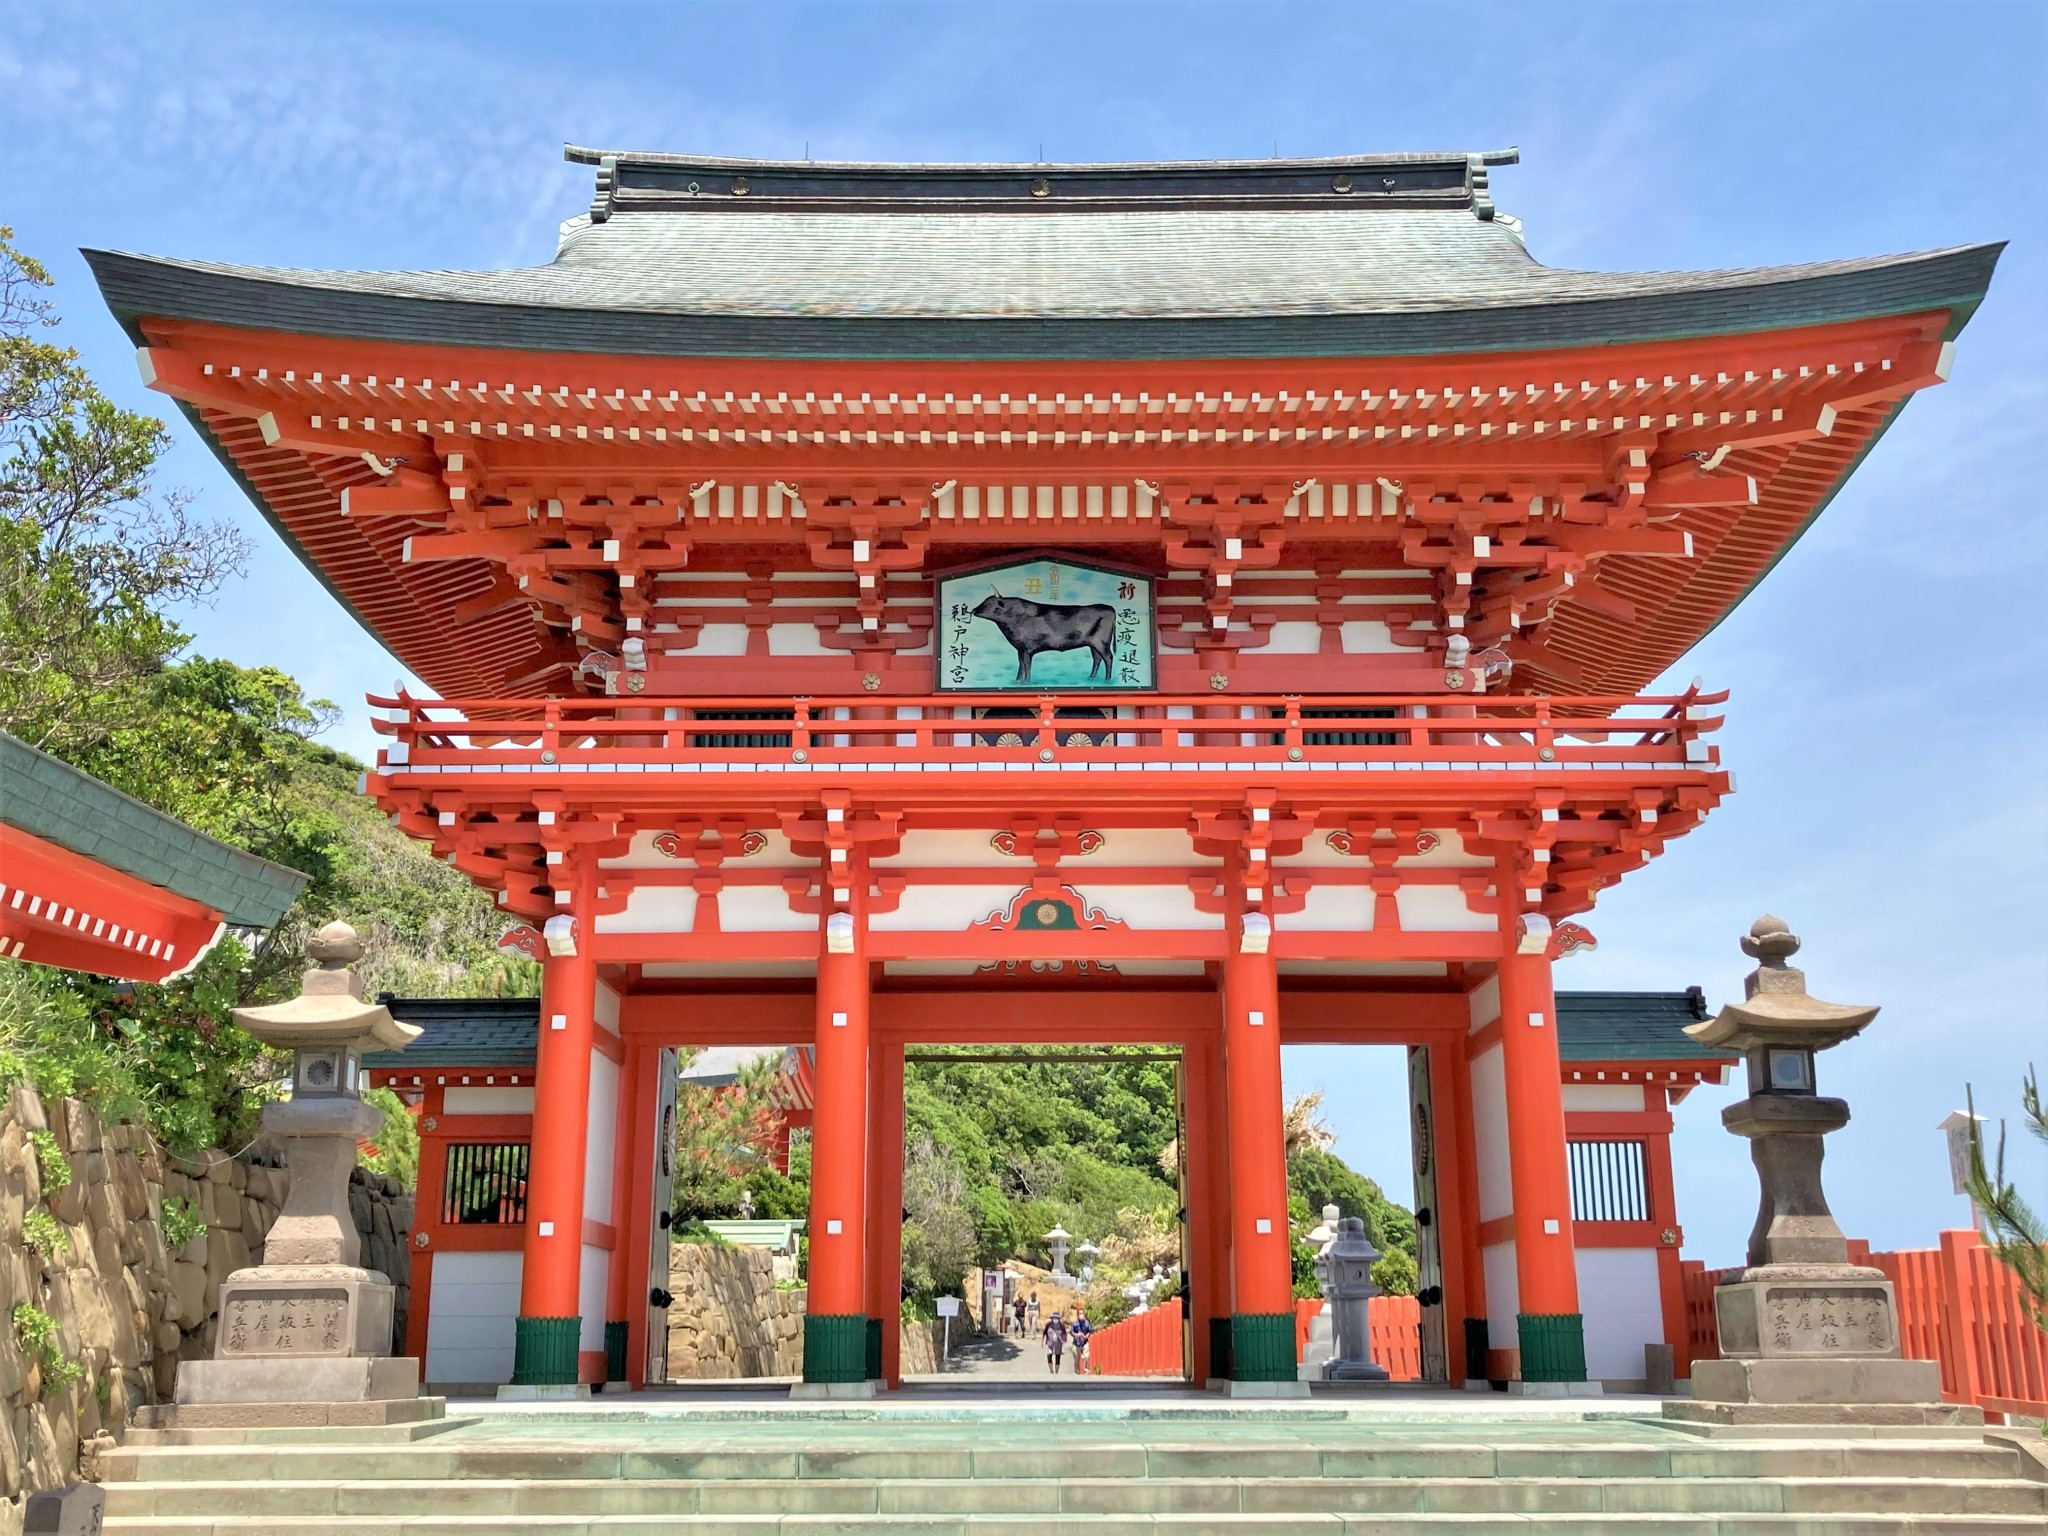 A bright red torii gate set against blue sky at the entrance of Udo Shrine in Miyazaki, Japan.